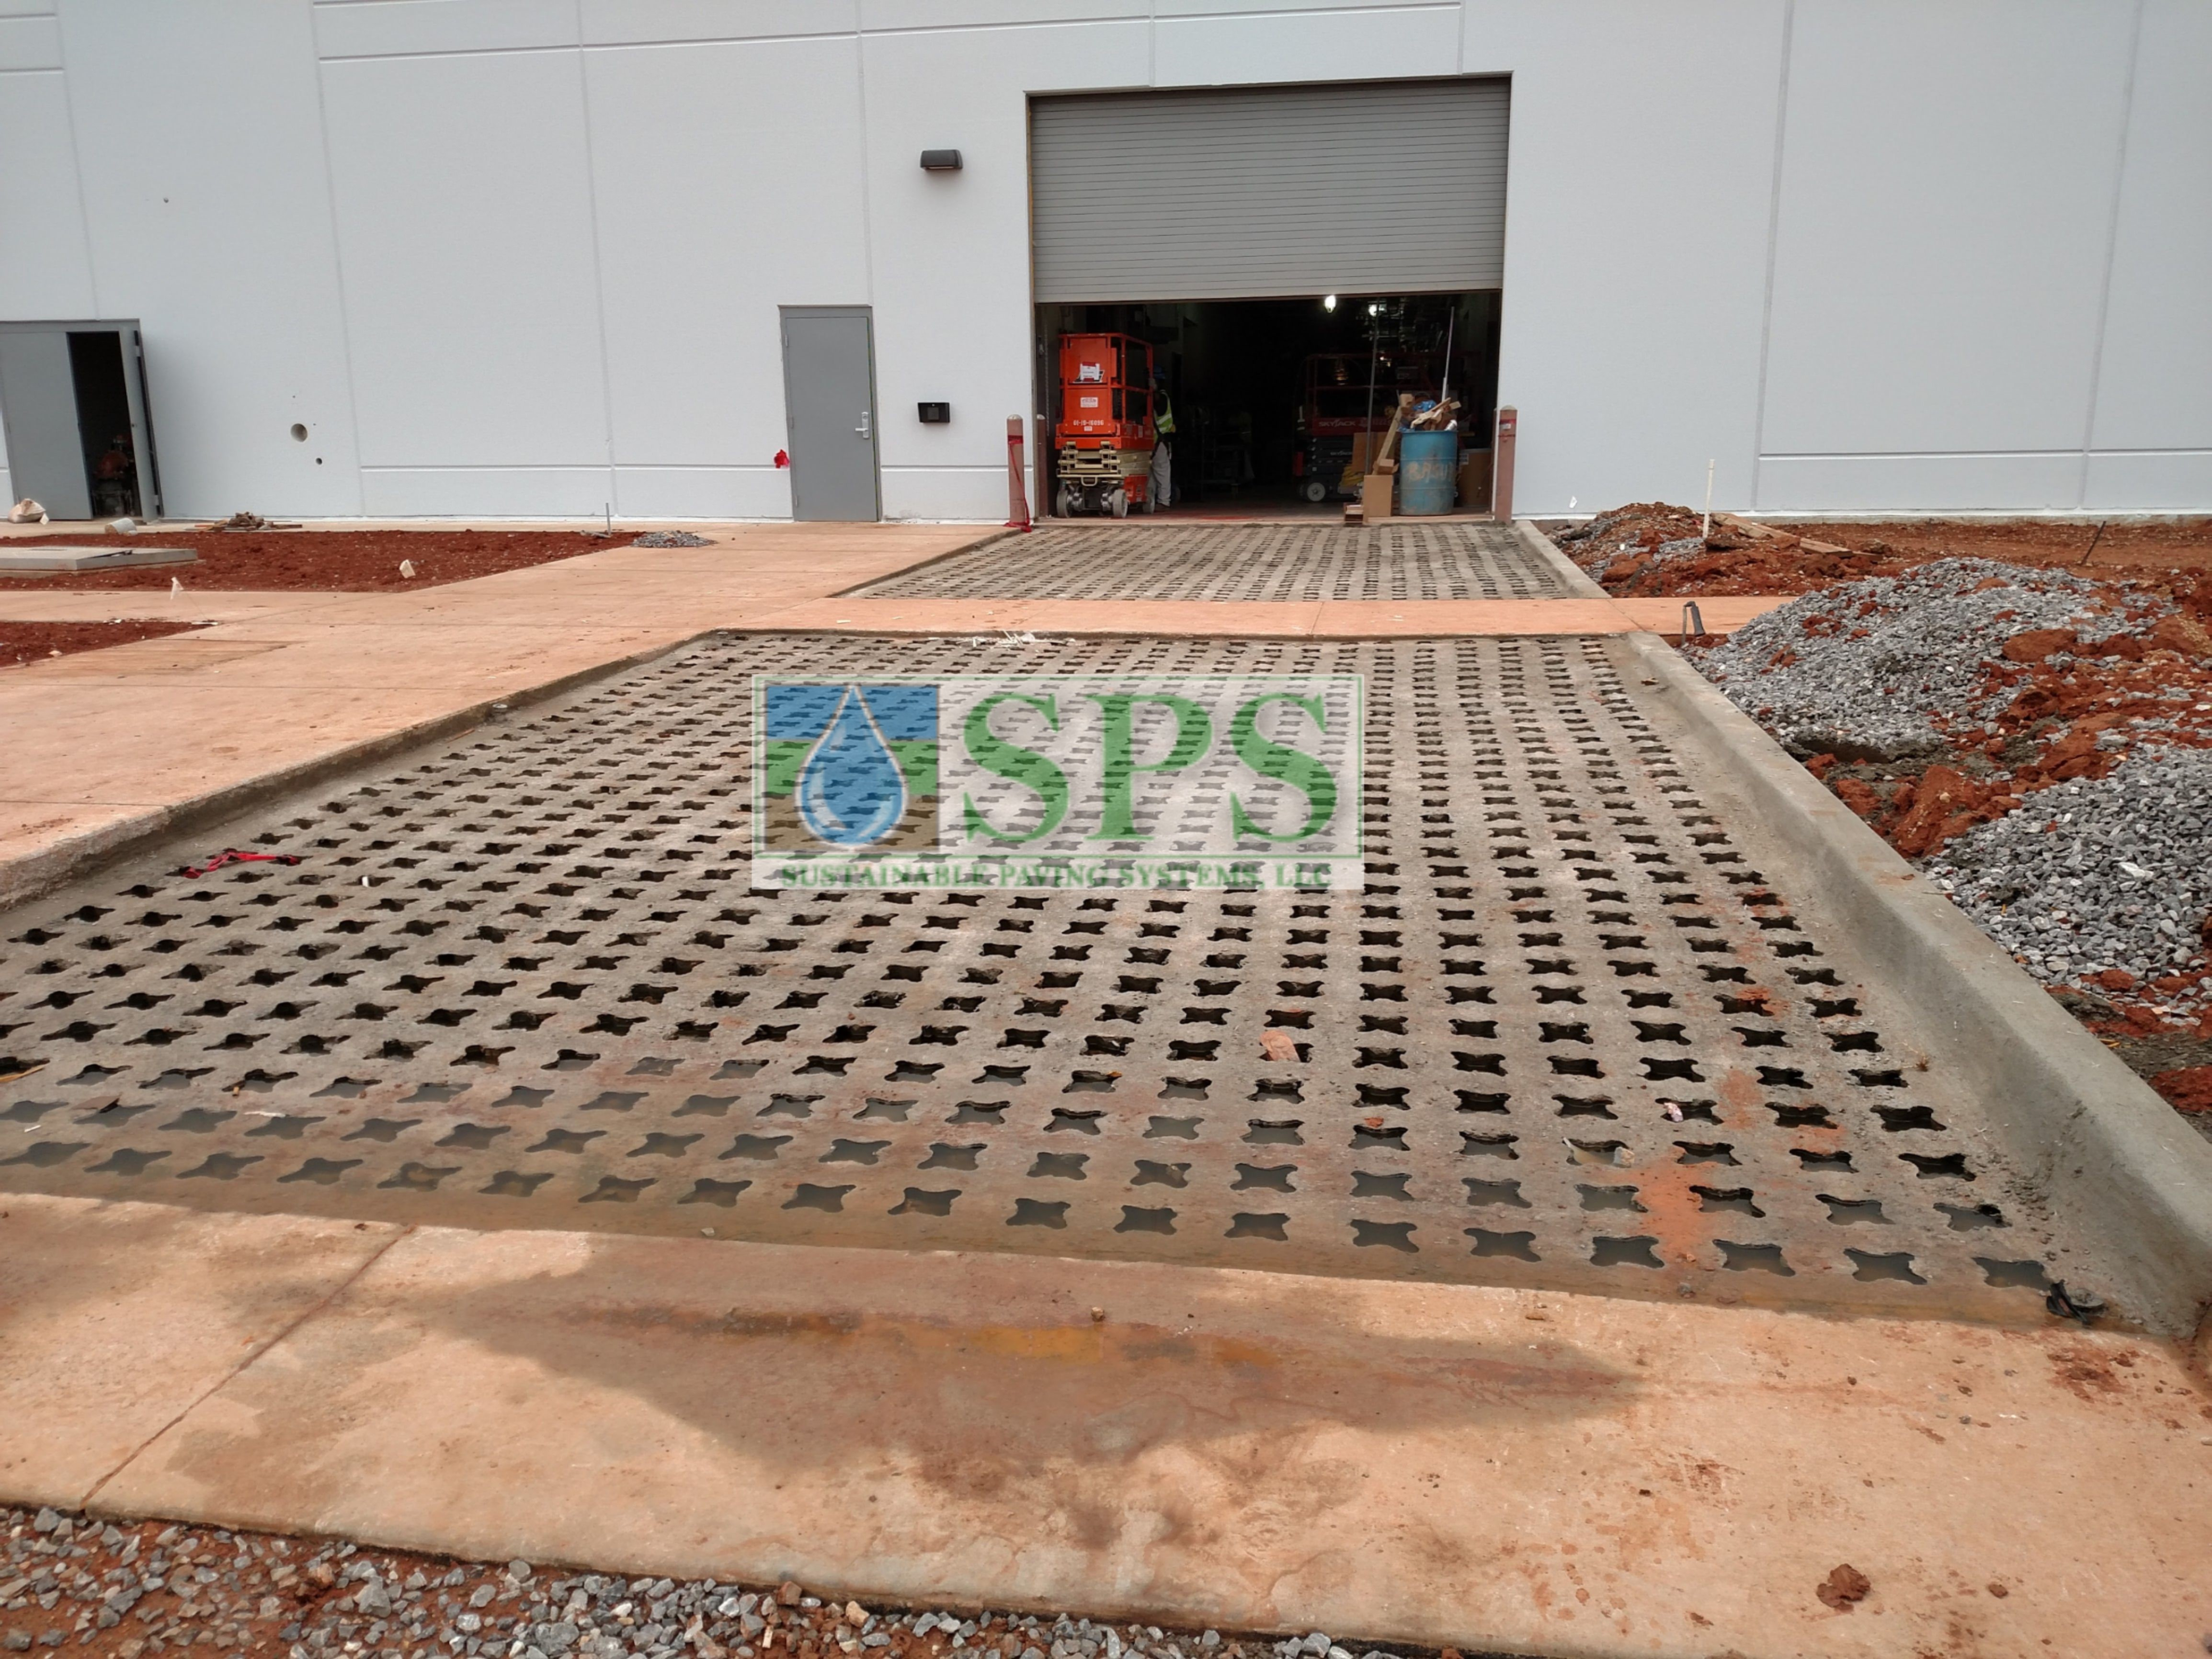 Driveway bay doors after concrete poured and the voids punched for Grasscrete Fully Concealed System at Boeing Company in Oklahoma City, OK, installed by Bomanite of Oklahoma..